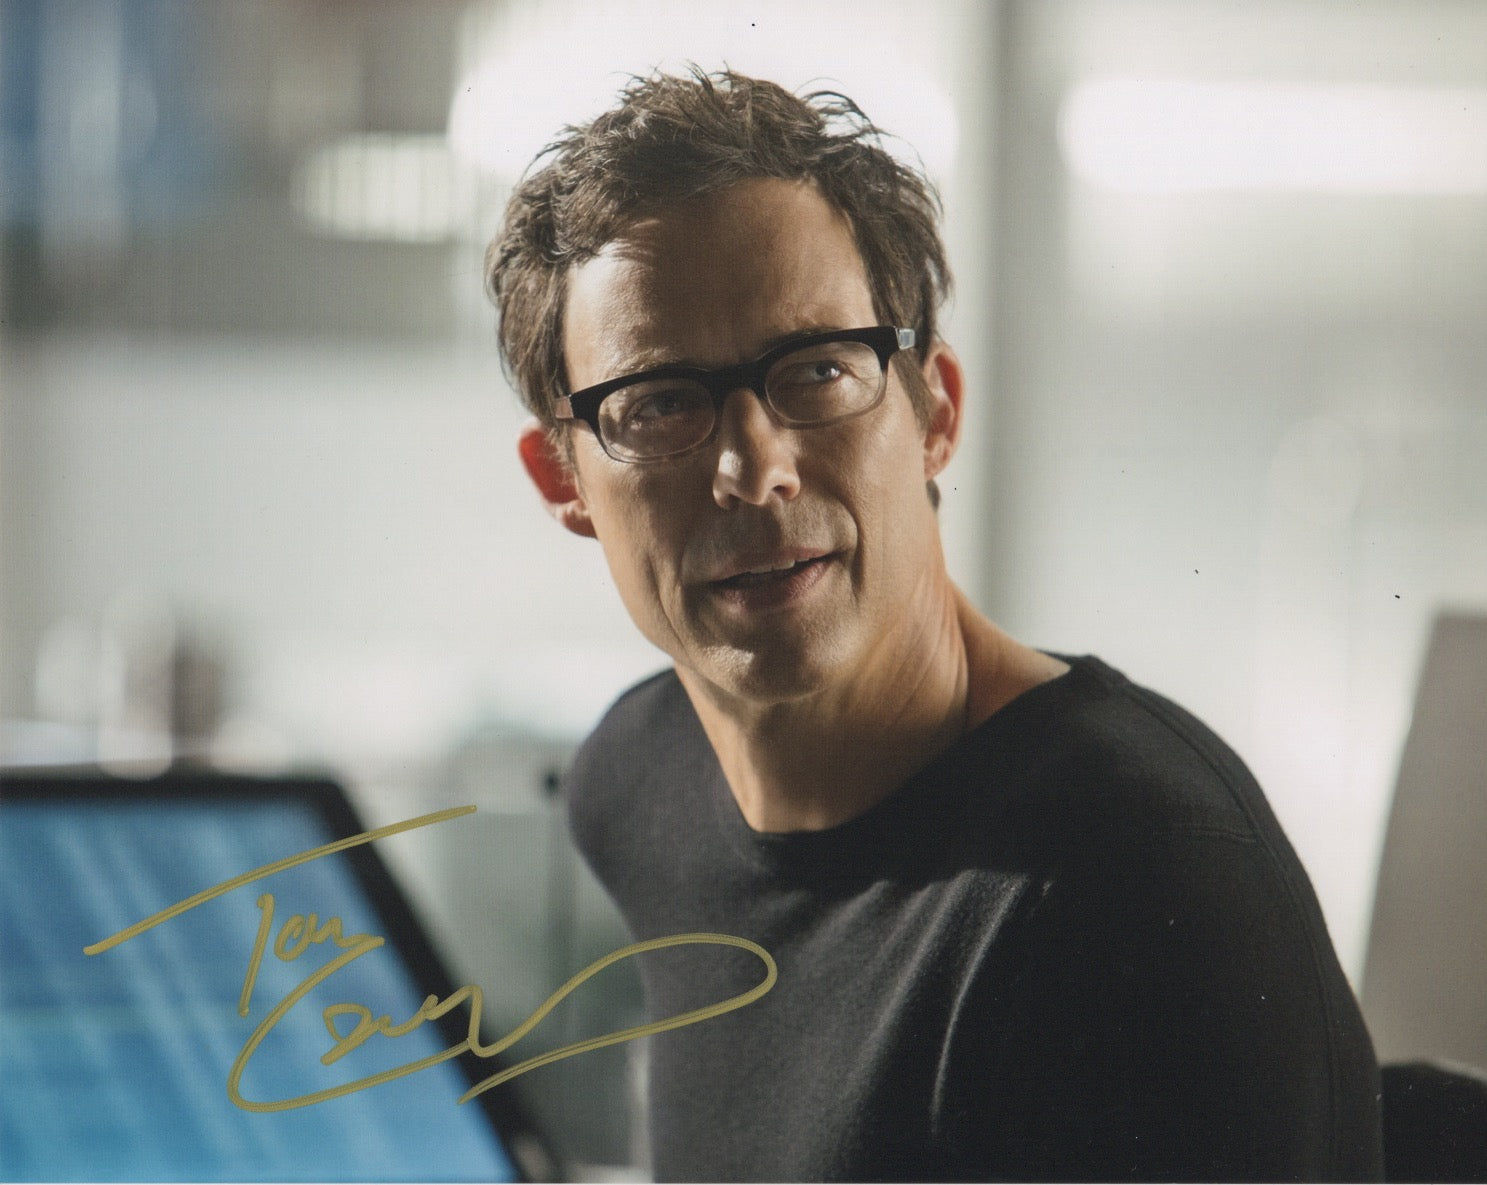 Tom Cavanagh The Flash Signed Autograph 8x10 Photo #8